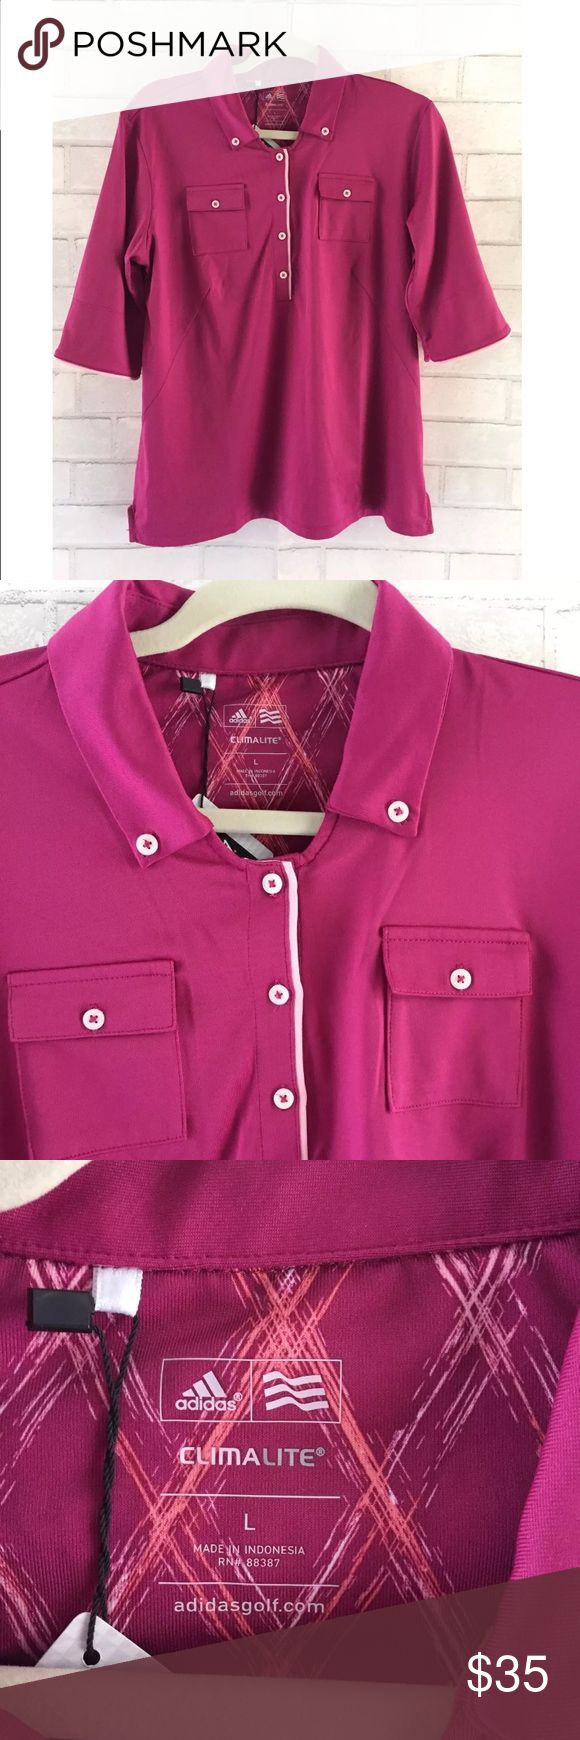 [Adidas] Climalite Golf Half Button Up Top NWT Adidas Climalite Women's Golf Top, Size Large. This top is in a beautiful berry and blush color featured as a half button up with two pockets. The Climalite feature of the top is a highly breathable fabrication that wicks moisture away from the skin for quick evaporation. The top is also fitted with LYCRA fiber for clothes that help you look and feel great. 95% Polyester - 5% Spandex. New With Tags! Color variation depends on screen and…